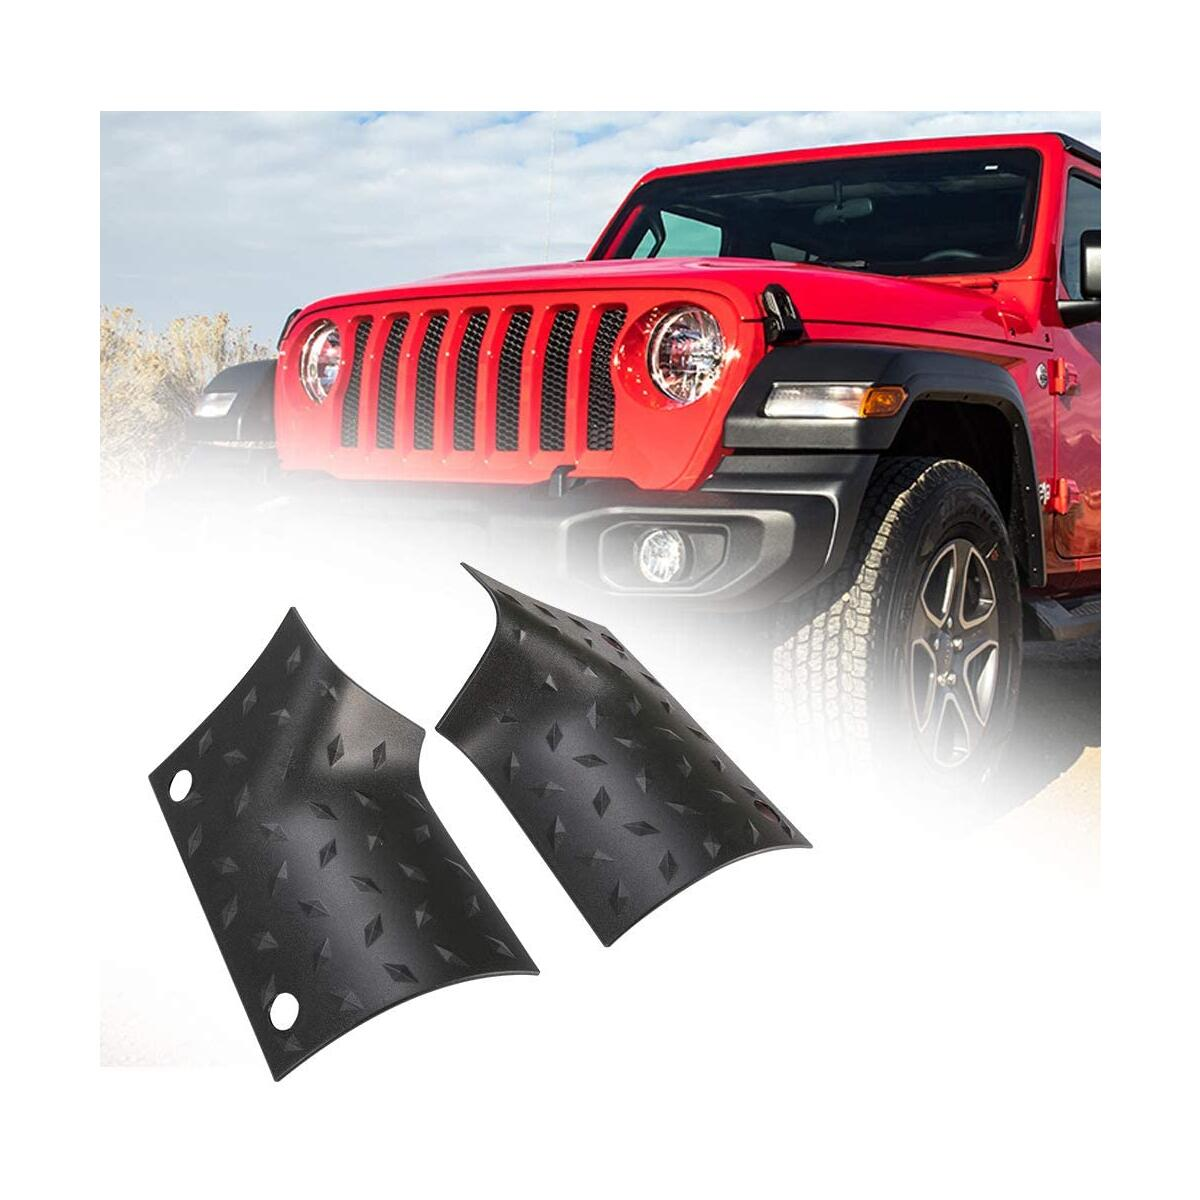 Cowl Body Armor Jeep JL, A&UTV PRO Star Outer Cowl Covers Guard Compatible with 2018-2020 Jeep Wrangler JL Gladiator JT Sahara Sport Rubicon